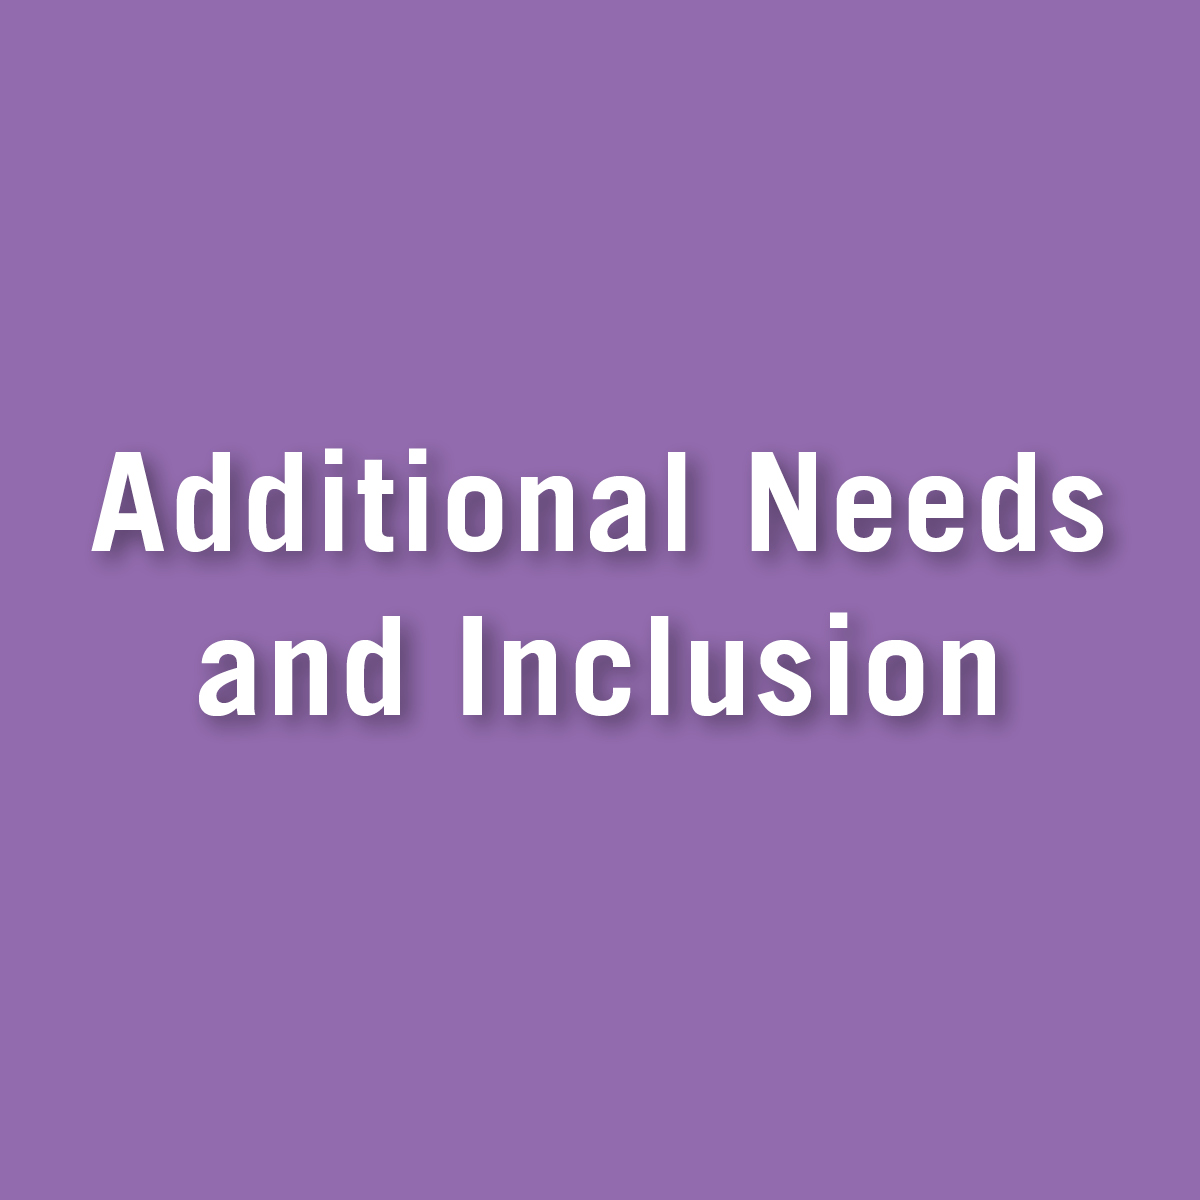 Additional Needs and Inclusion